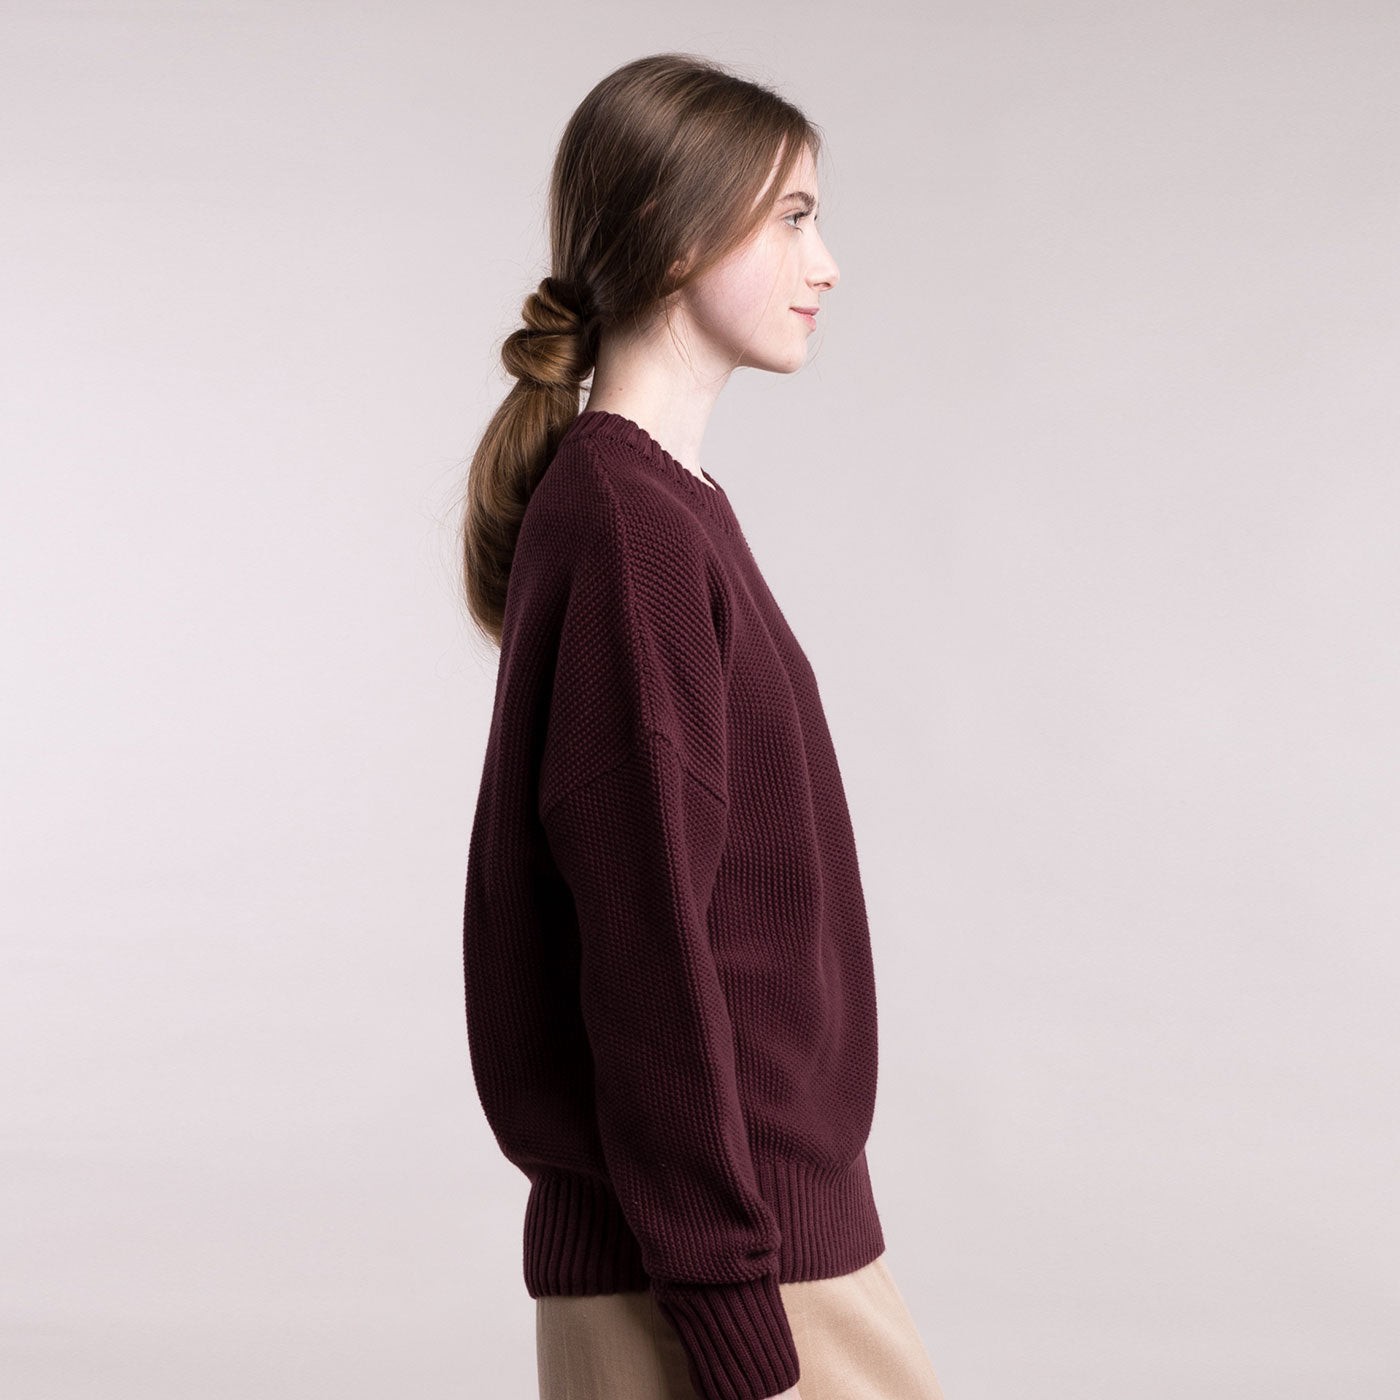 The model wears a burgundy sustainable organic cotton knitted fine rice pullover, side view.